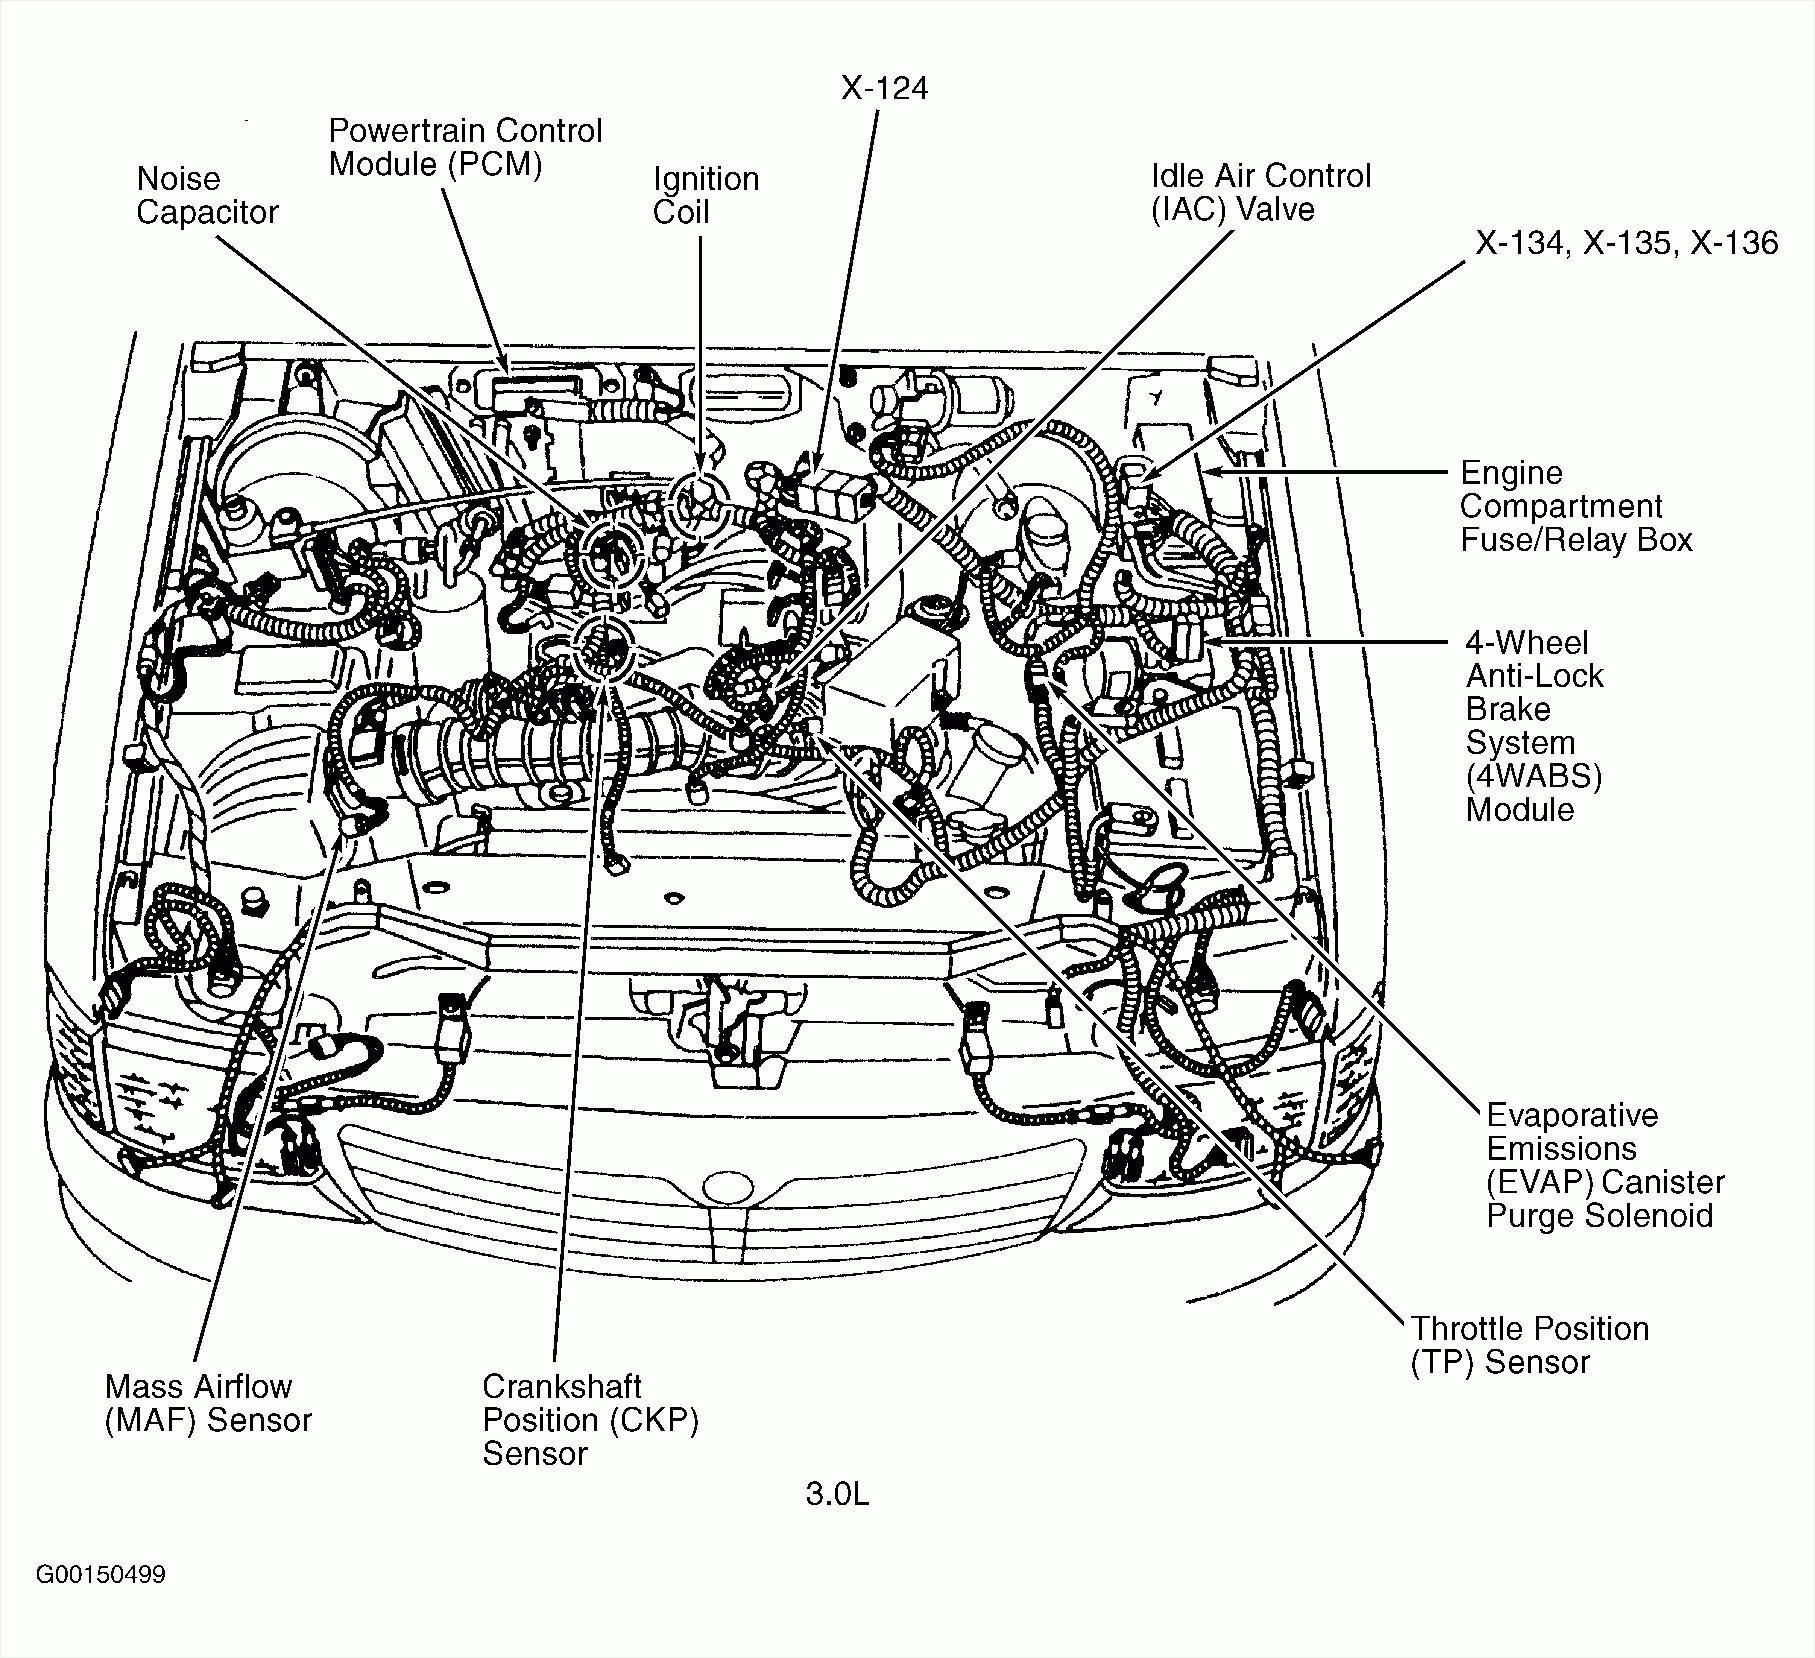 2000 Mazda Protege Engine Diagram Mazda B2200 Engine Exhaust Diagram Worksheet and Wiring Diagram • Of 2000 Mazda Protege Engine Diagram